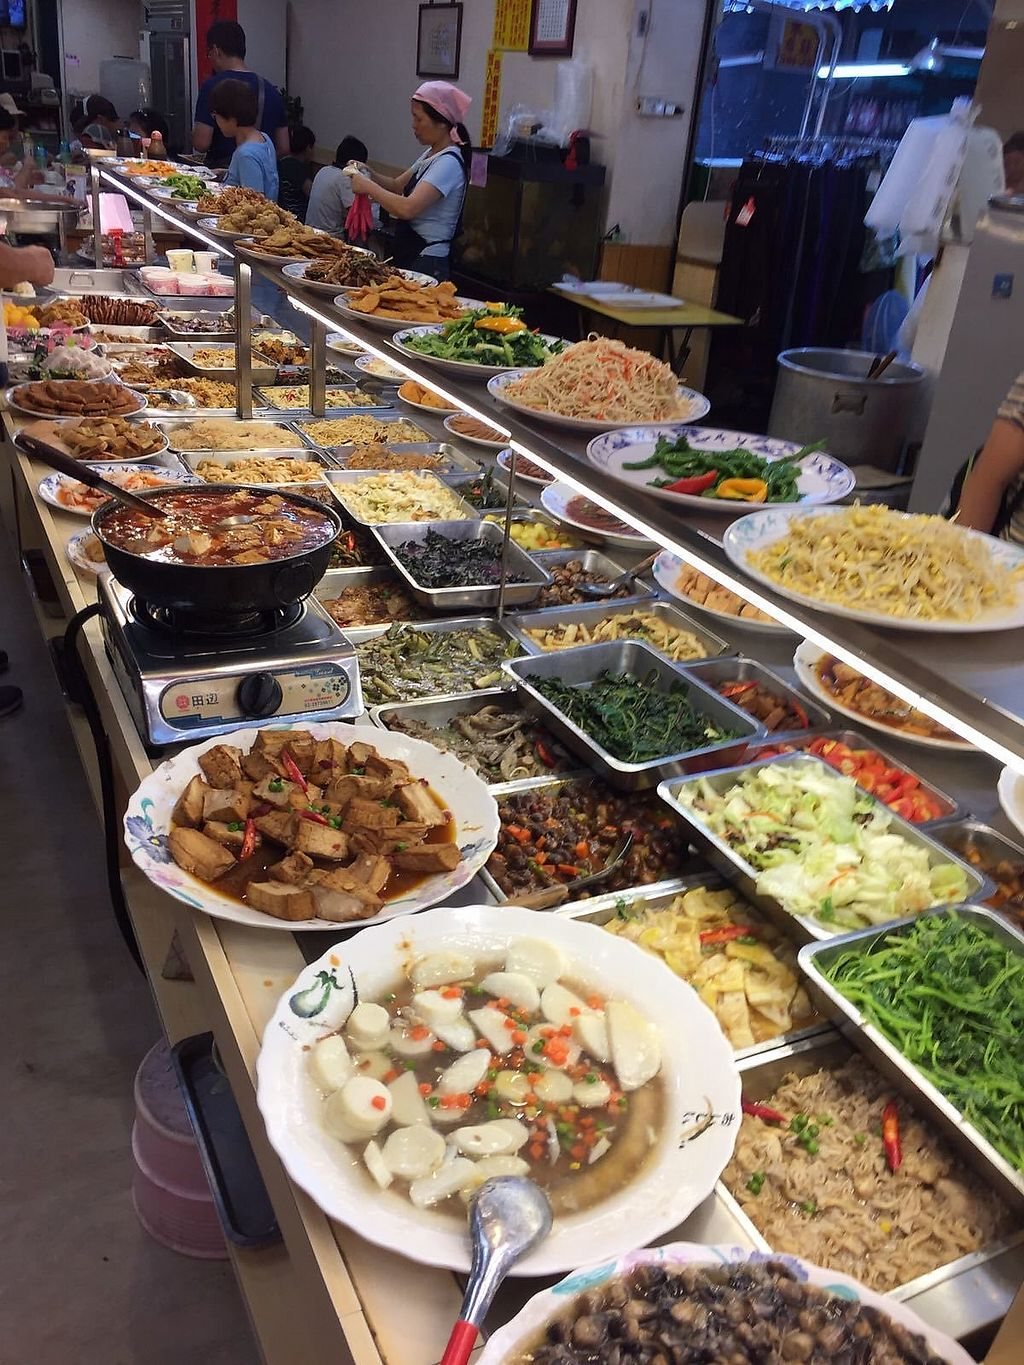 """Photo of Yao Tsih Su Shih Buffet  by <a href=""""/members/profile/FlokiTheCat"""" class=""""title__title"""">FlokiTheCat</a> <br/>General view of the buffet <br/> July 31, 2017  - <a href='/contact/abuse/image/6793/287088'>Report</a>"""